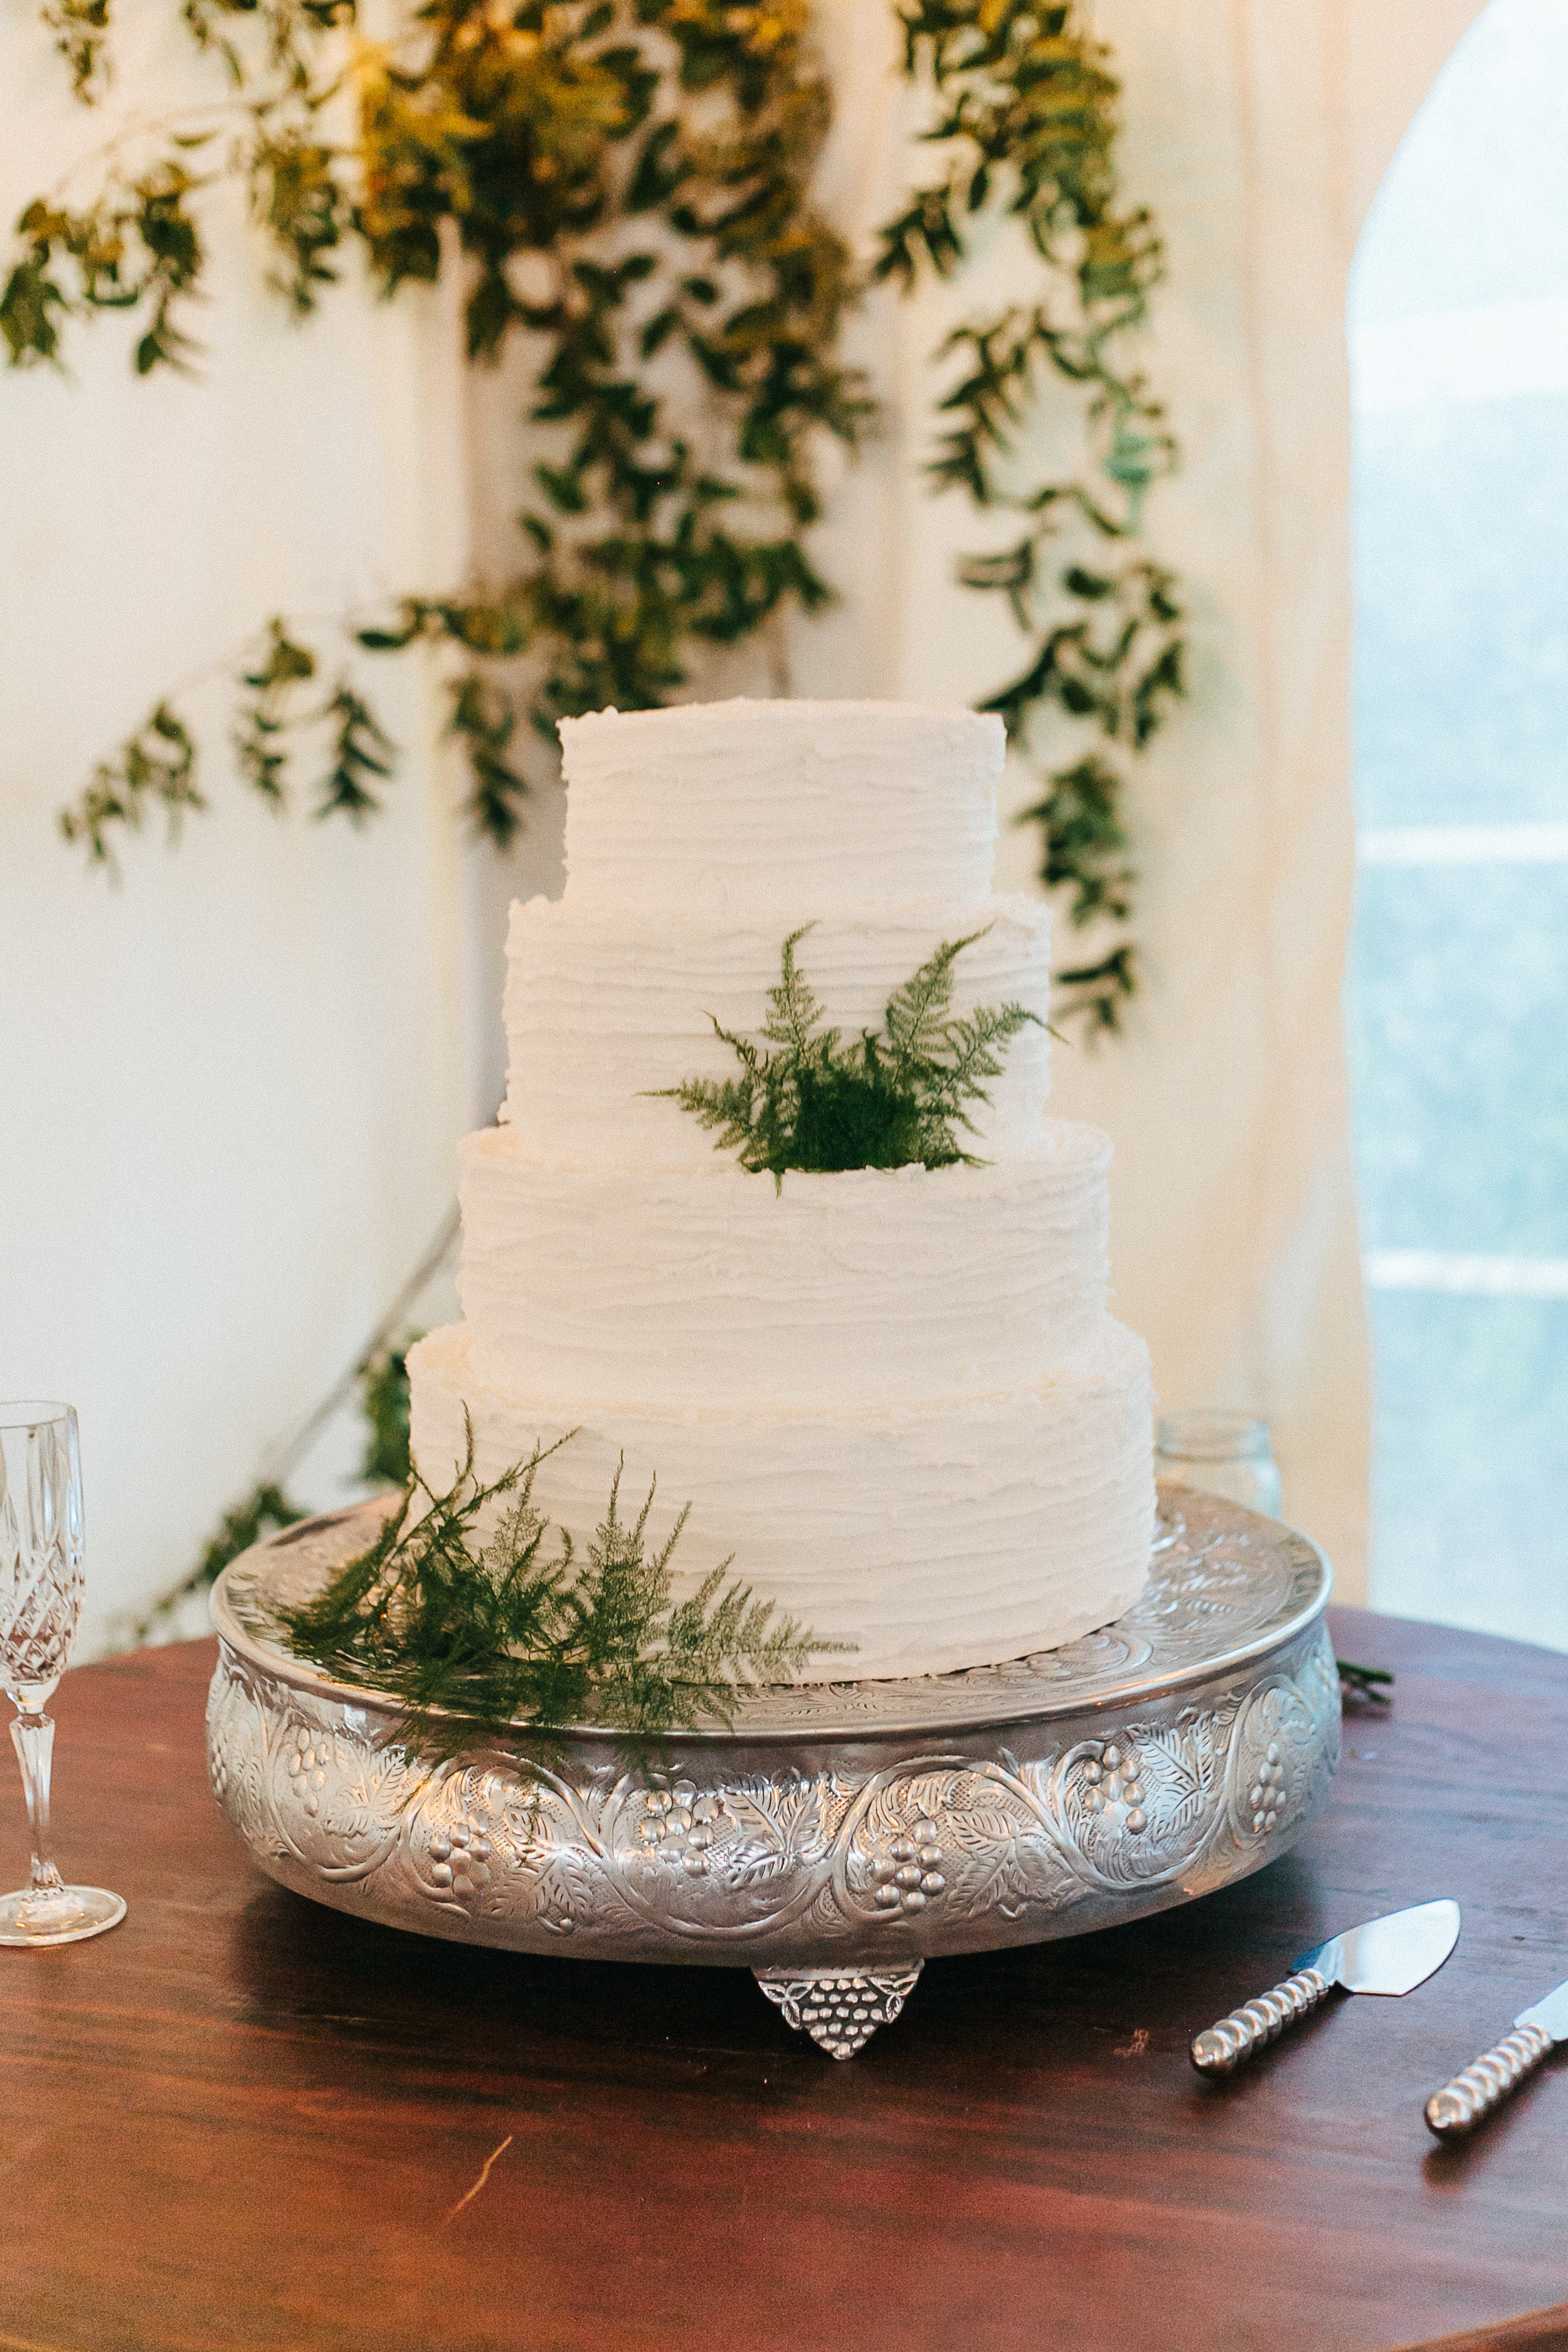 White woodland-inspired caked for Rustic Winter Georgia wedidng